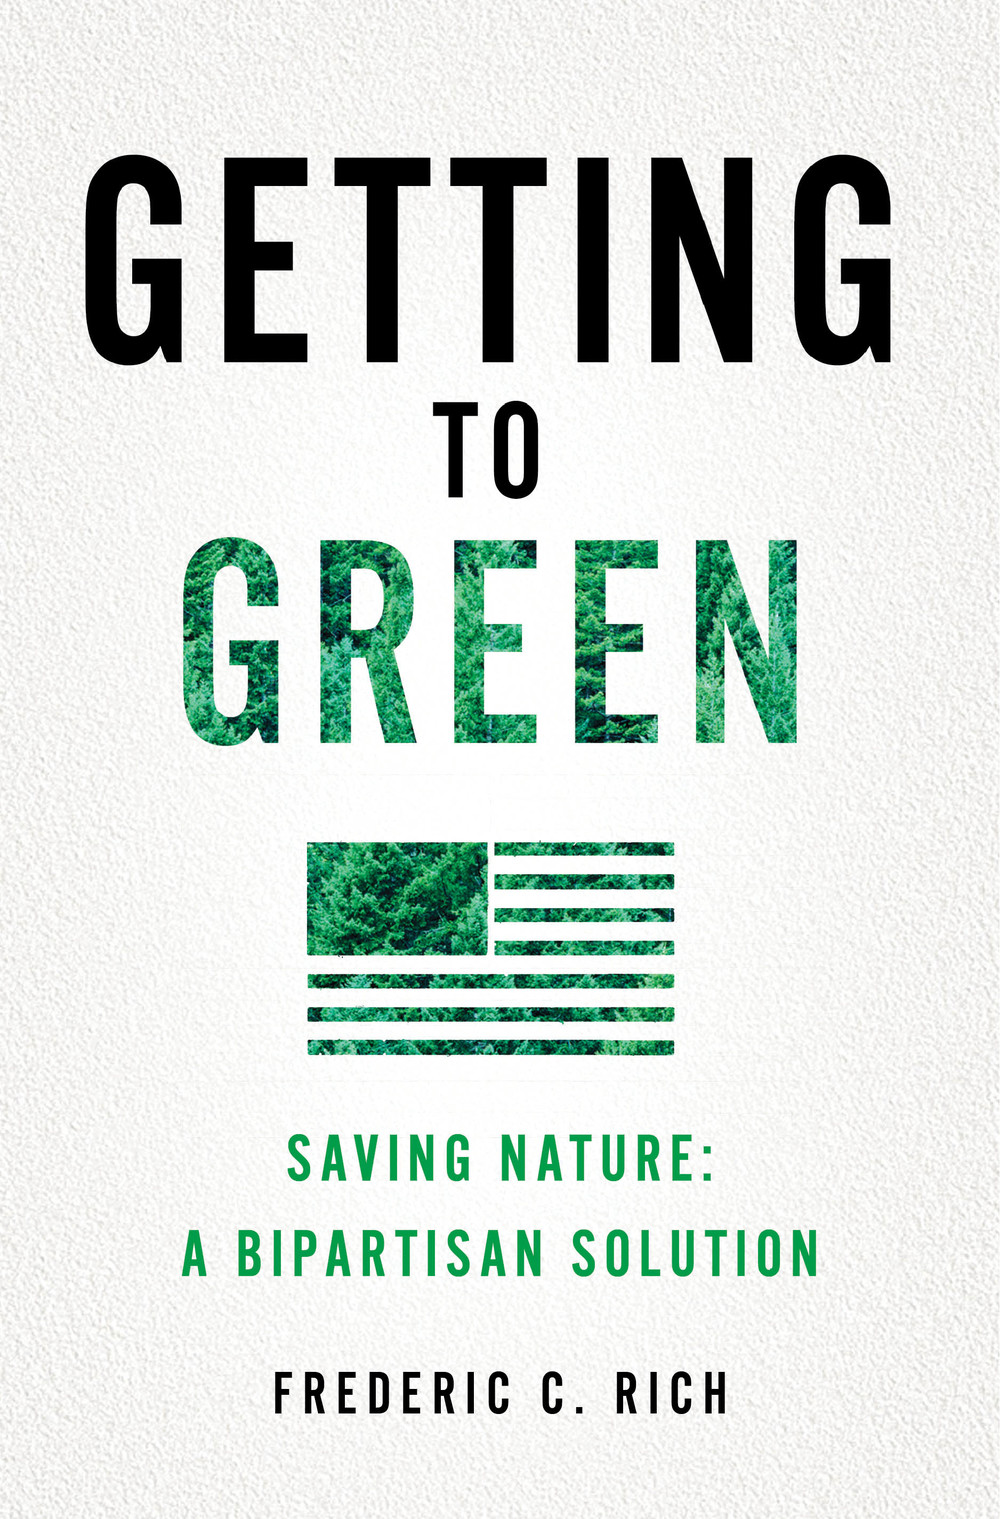 Getting to Green: Saving Nature: A Bipartisan Solution by Frederic C. Rich (forthcoming, W. W. Norton, 2016)